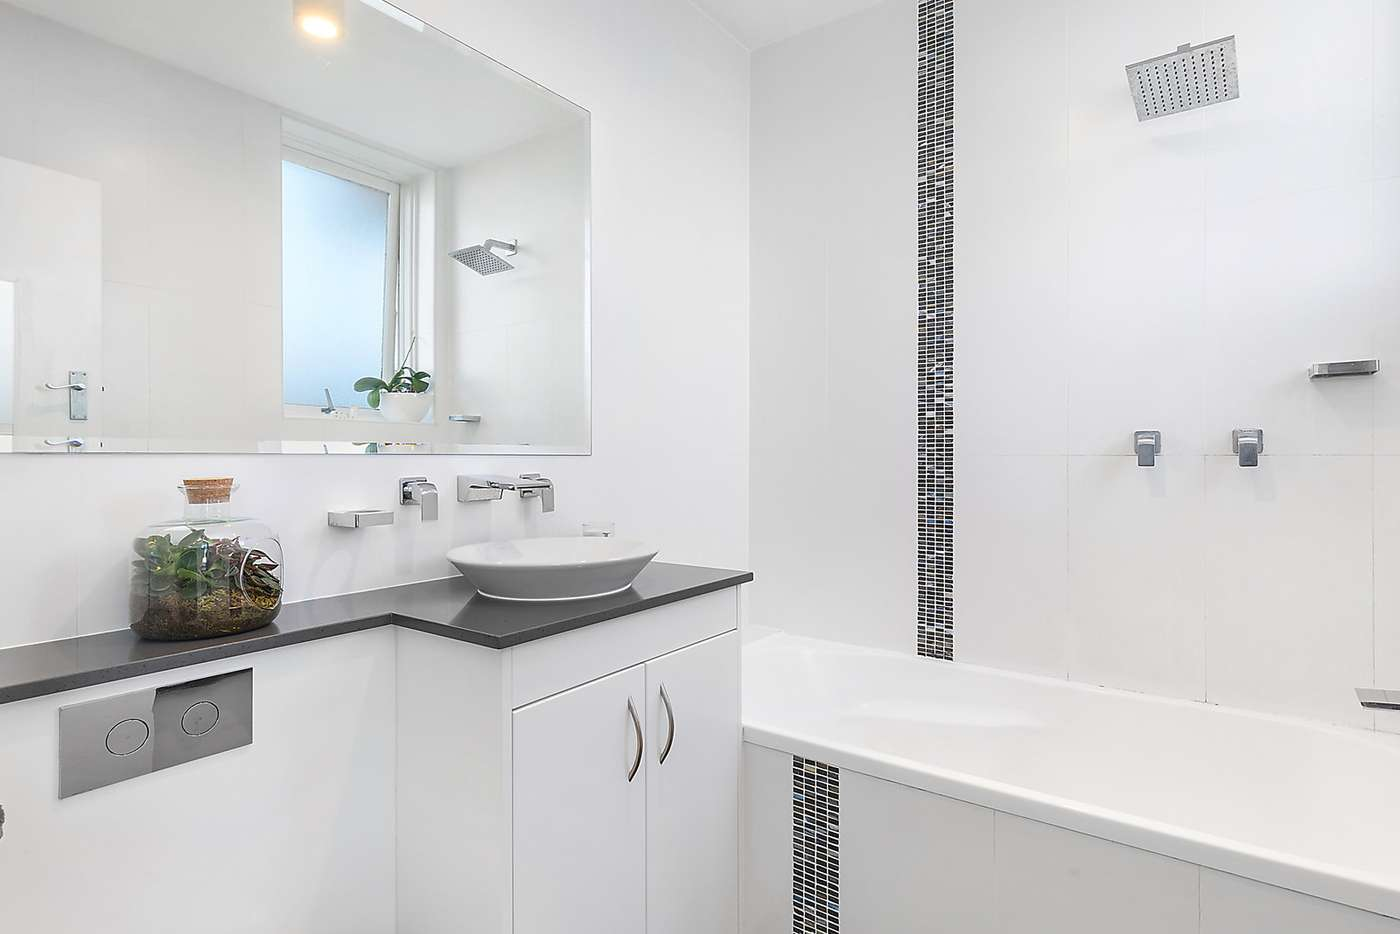 Fifth view of Homely unit listing, 11/78 Spofforth Street, Cremorne NSW 2090